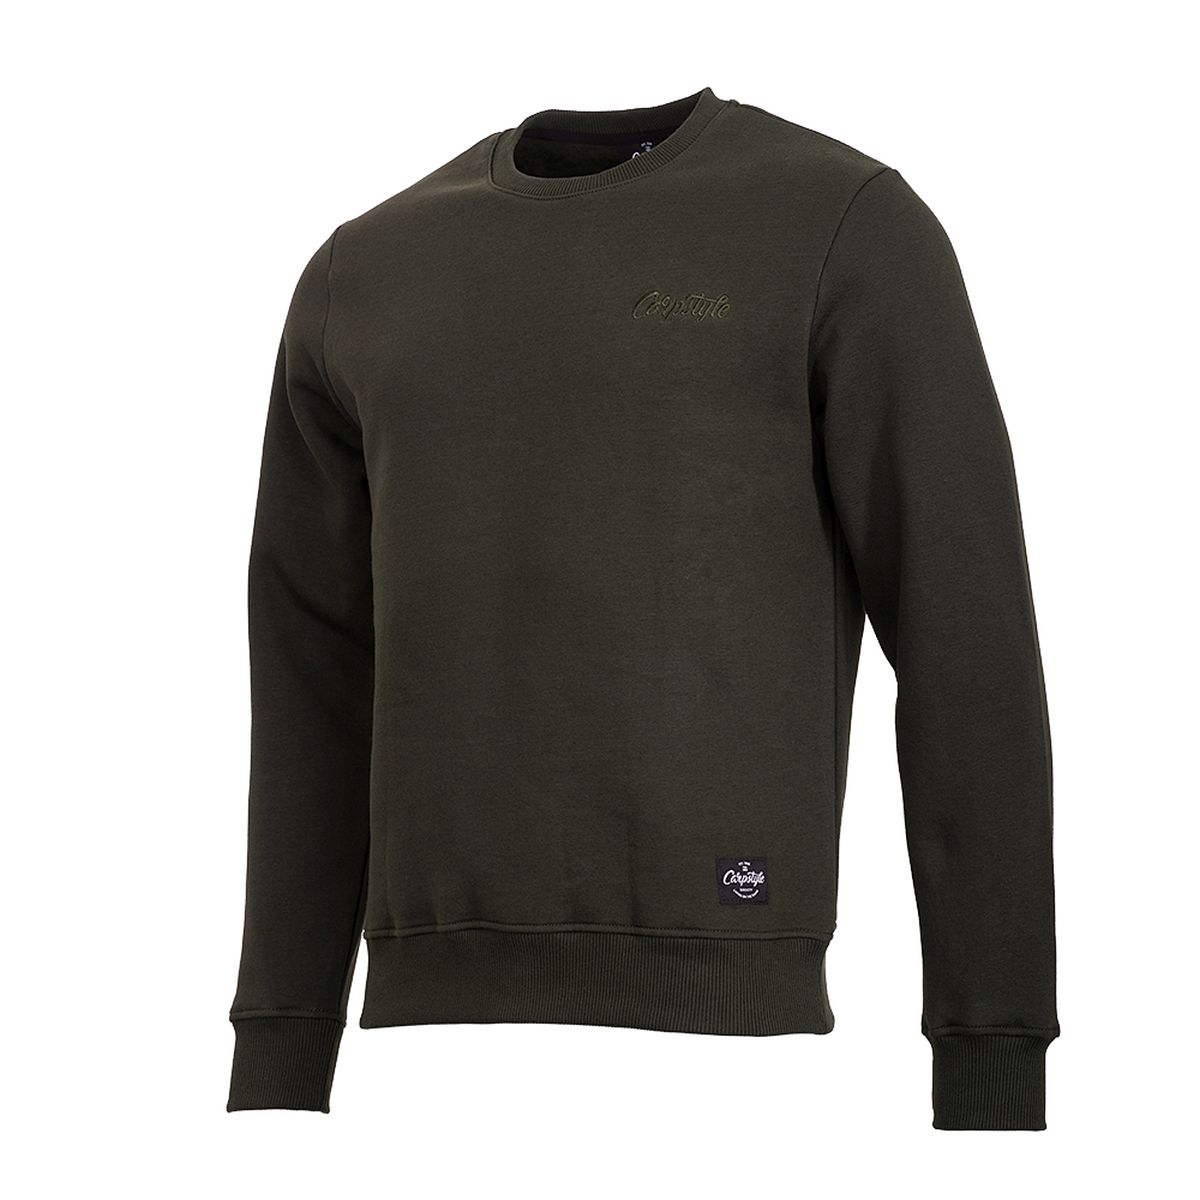 CARPSTYLE BANK SWEATSHIRT - L